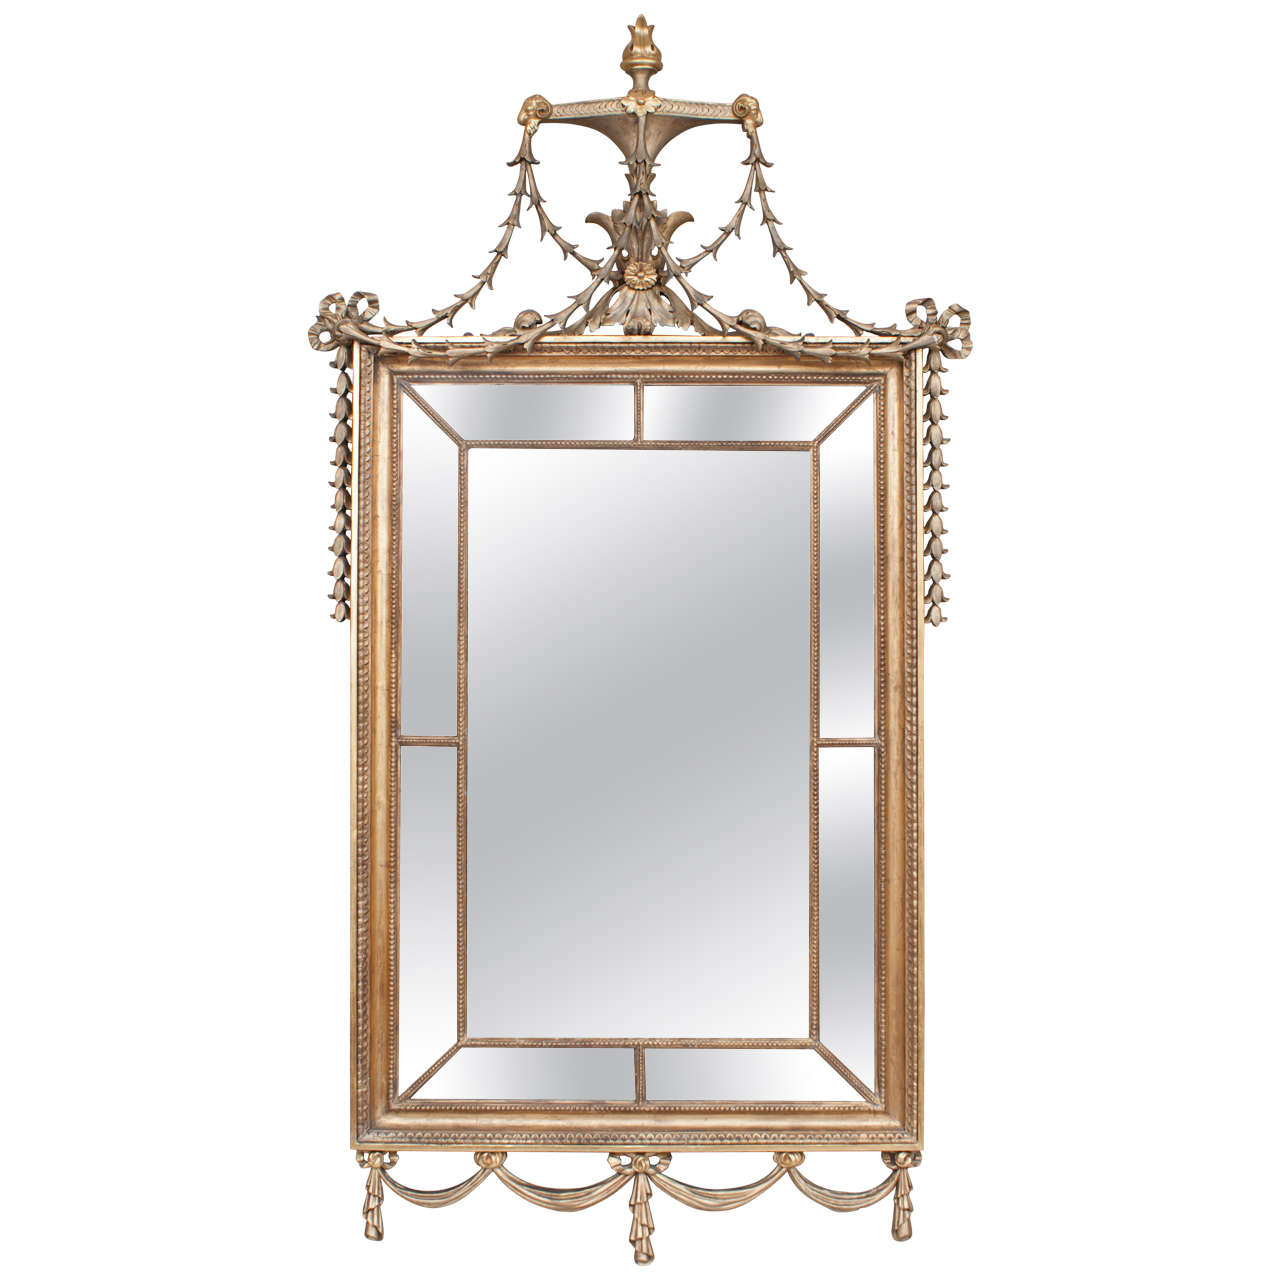 English regency adam style giltwood mirror circa 1815 for for Adam style mirror